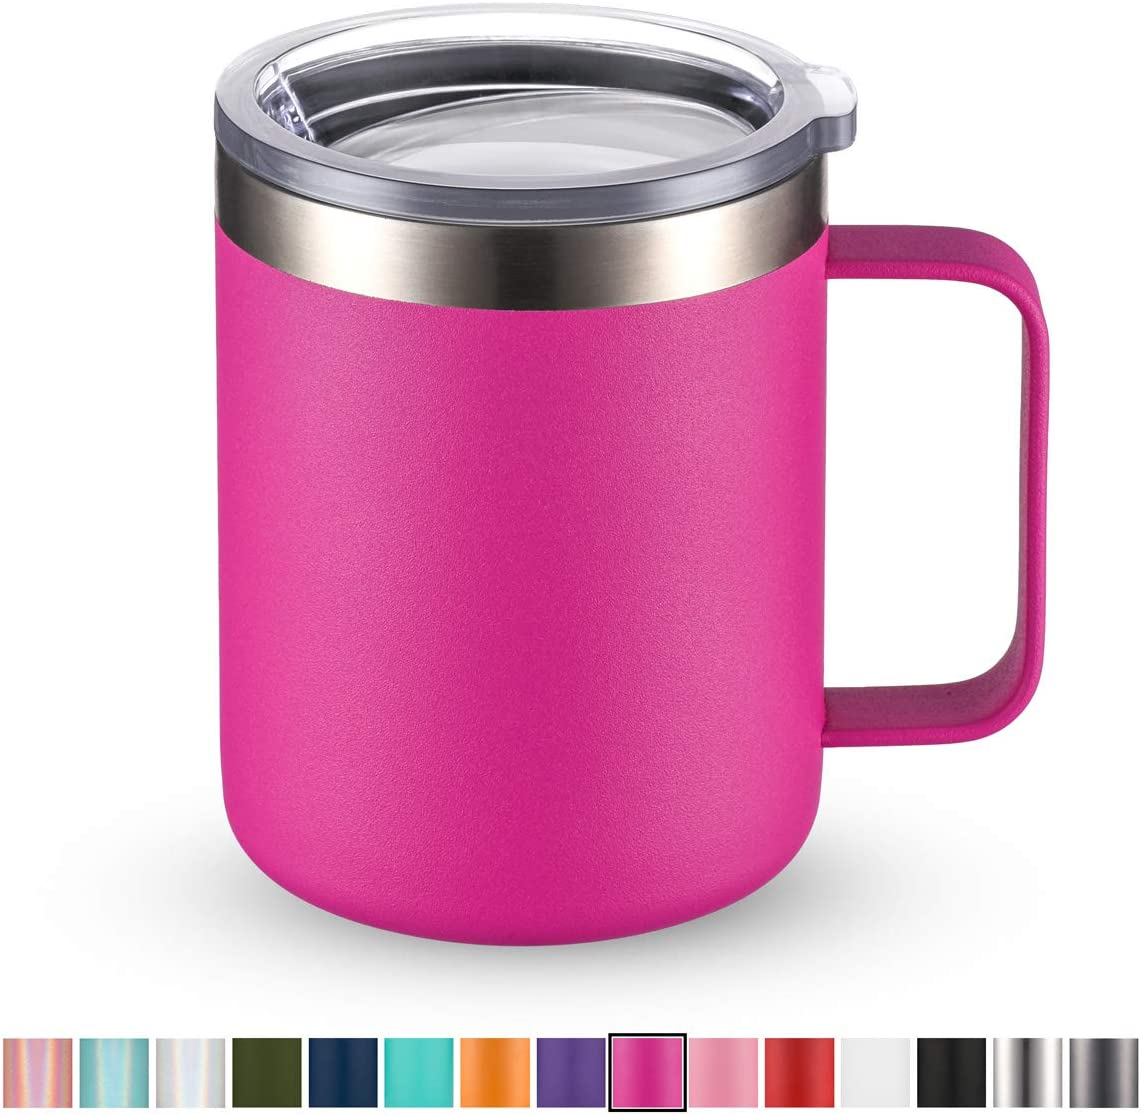 Civago Stainless Steel Coffee Mug Cup with Handle, 12 oz Double Wall Vacuum Insulated Tumbler with Lid Travel Friendly (Fuchsia, 1 Pack)